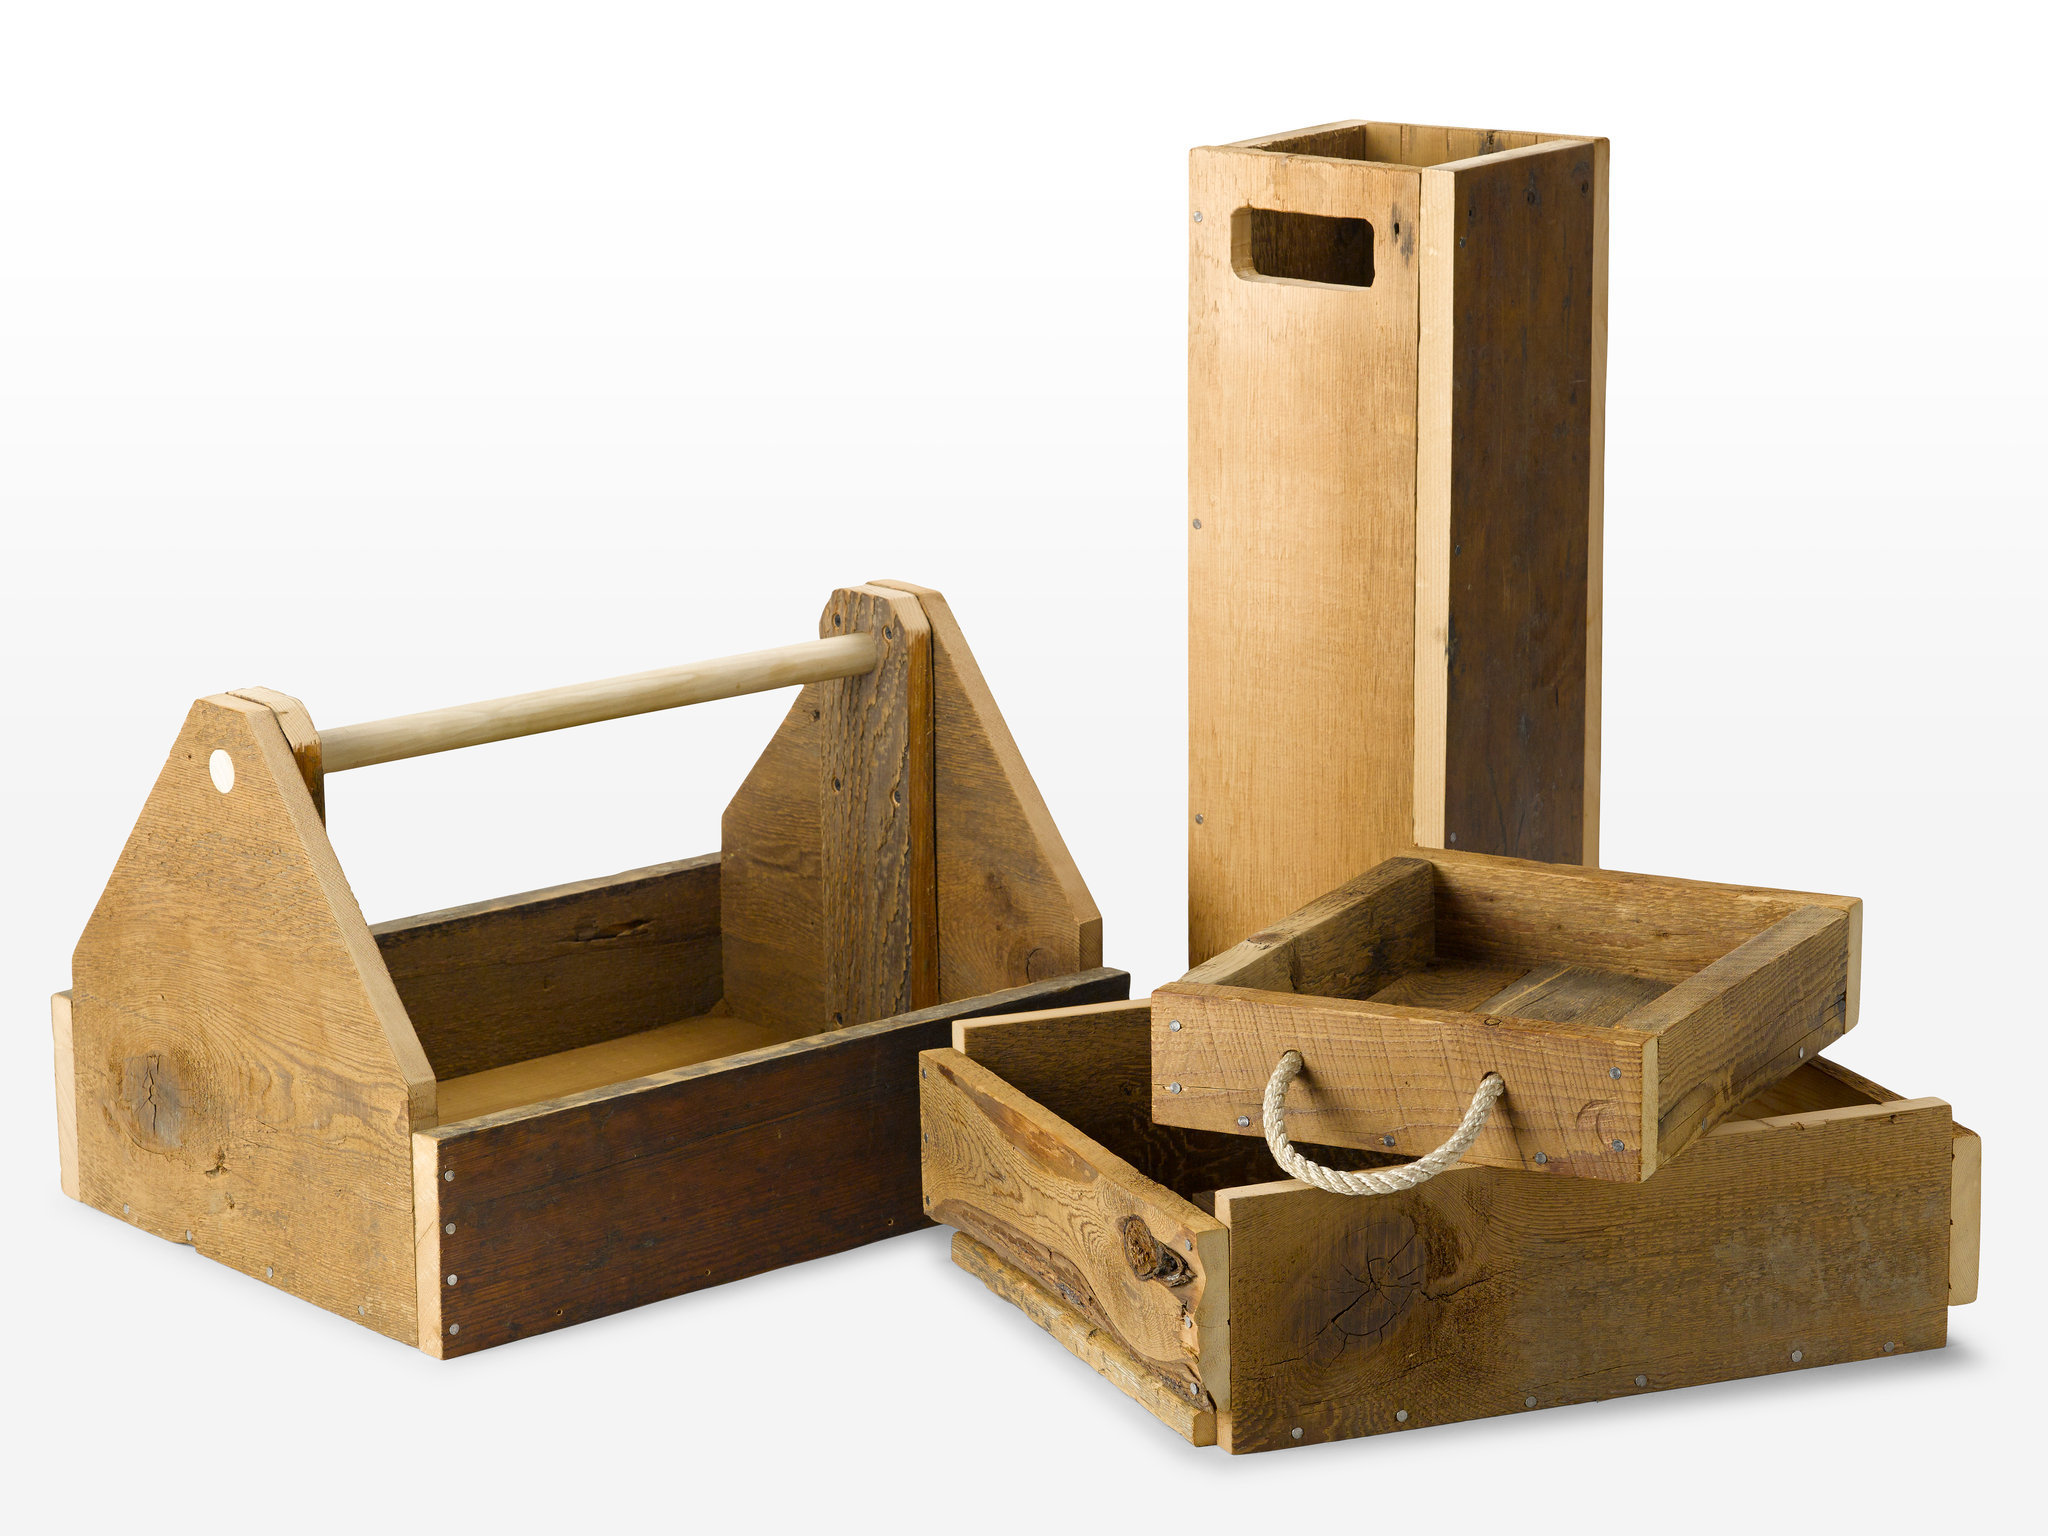 Reclaimed wooden boxes  for everyday objects